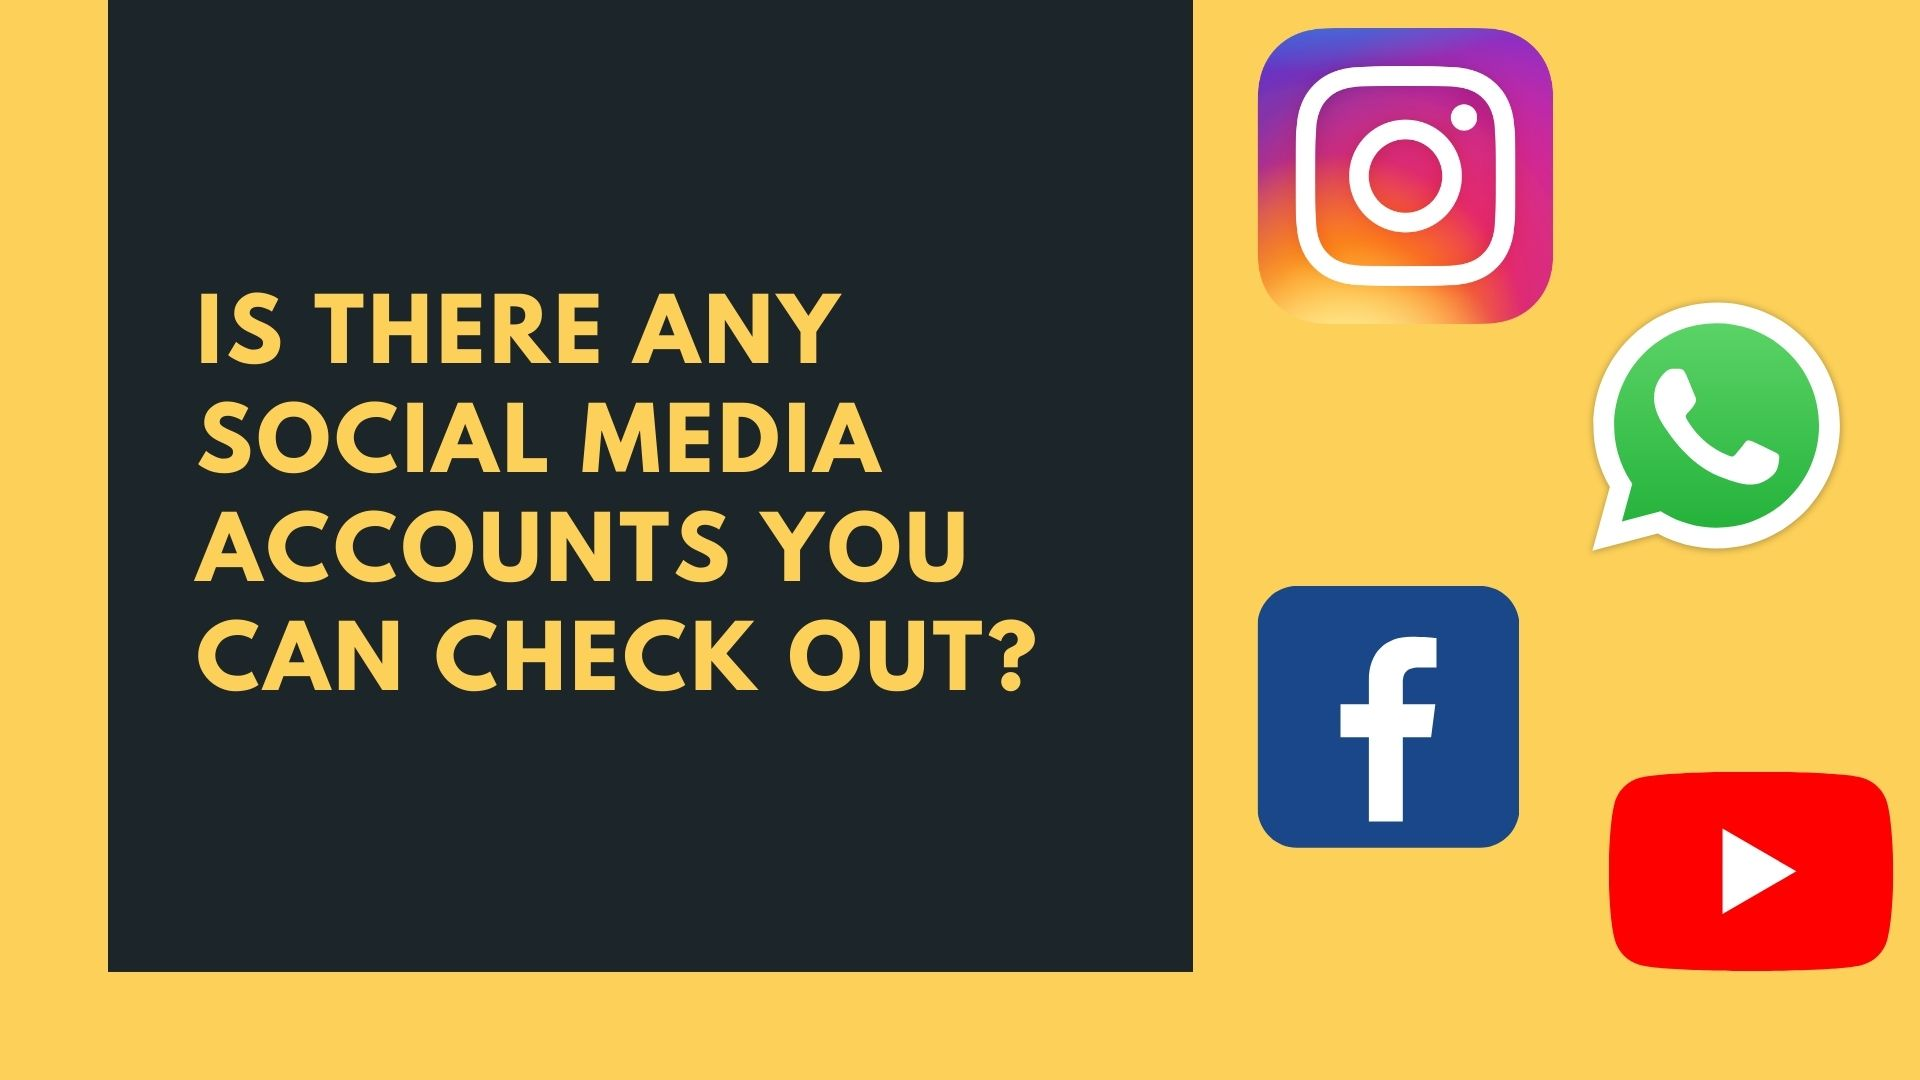 Is there any social media accounts you can check out